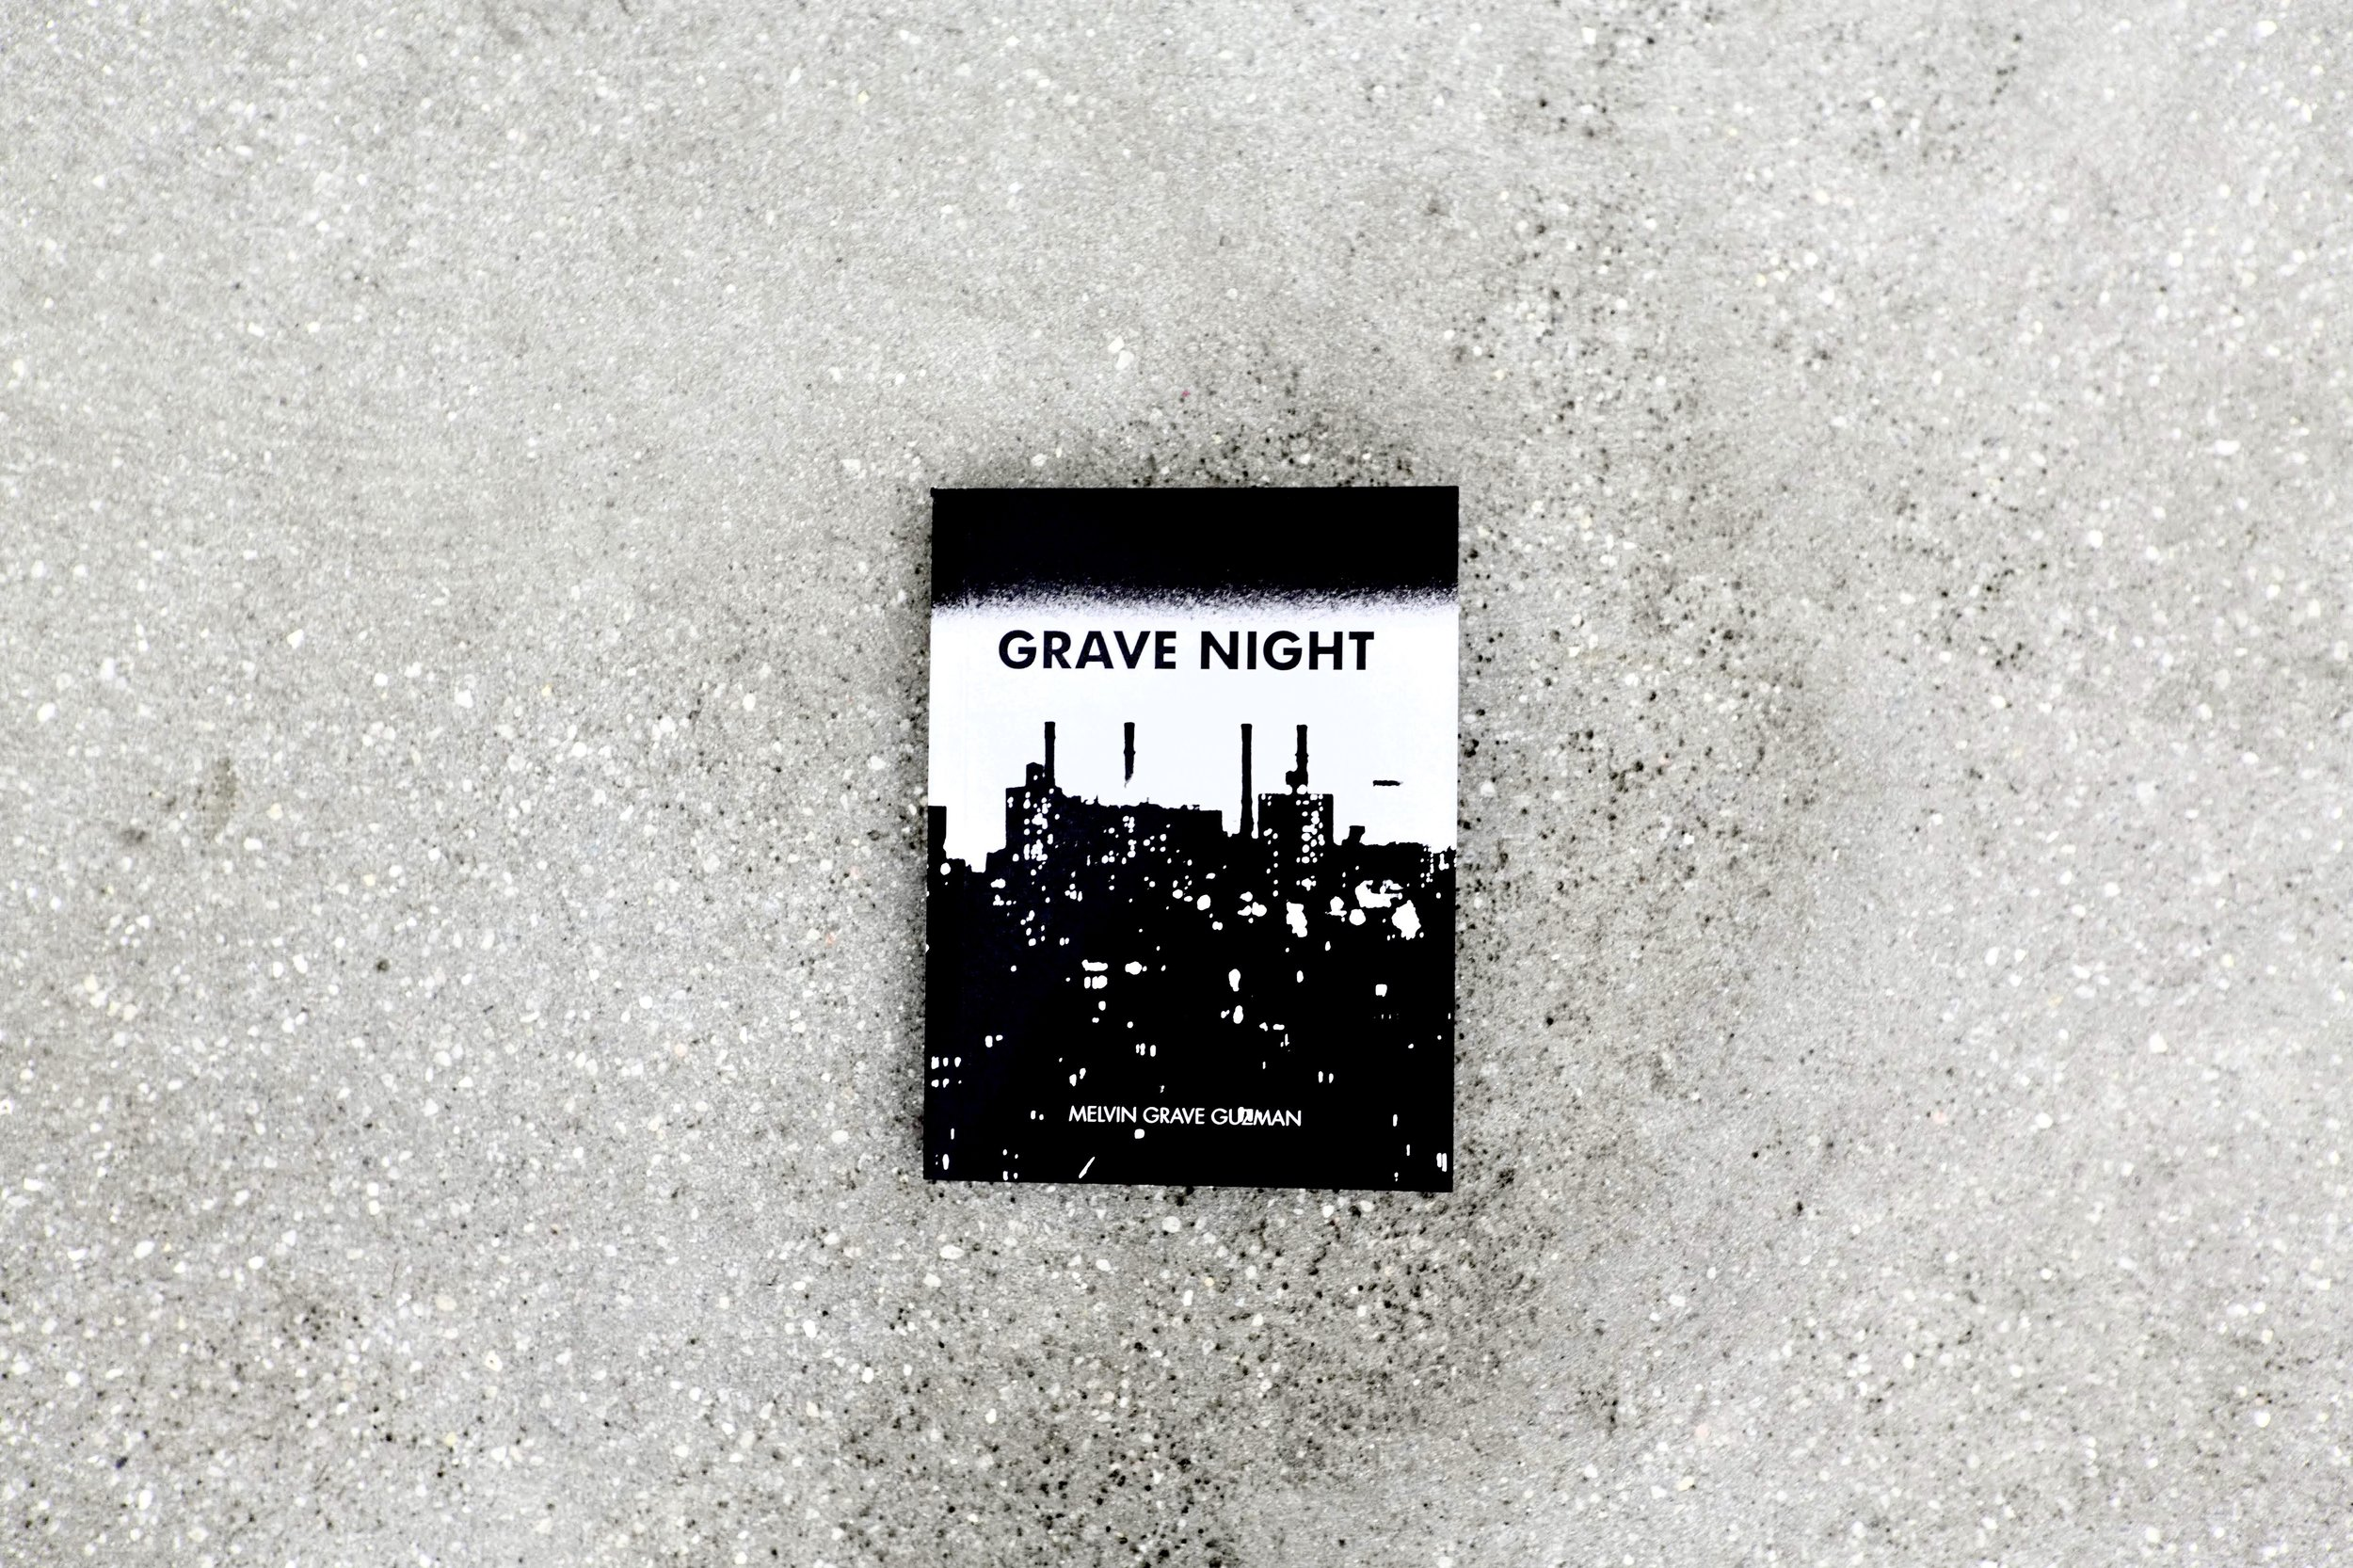 Melvin (Grave) Guzman GRAVE NIGHT, 2018 6 x 4.5 inches,  235 pages 50.jpg